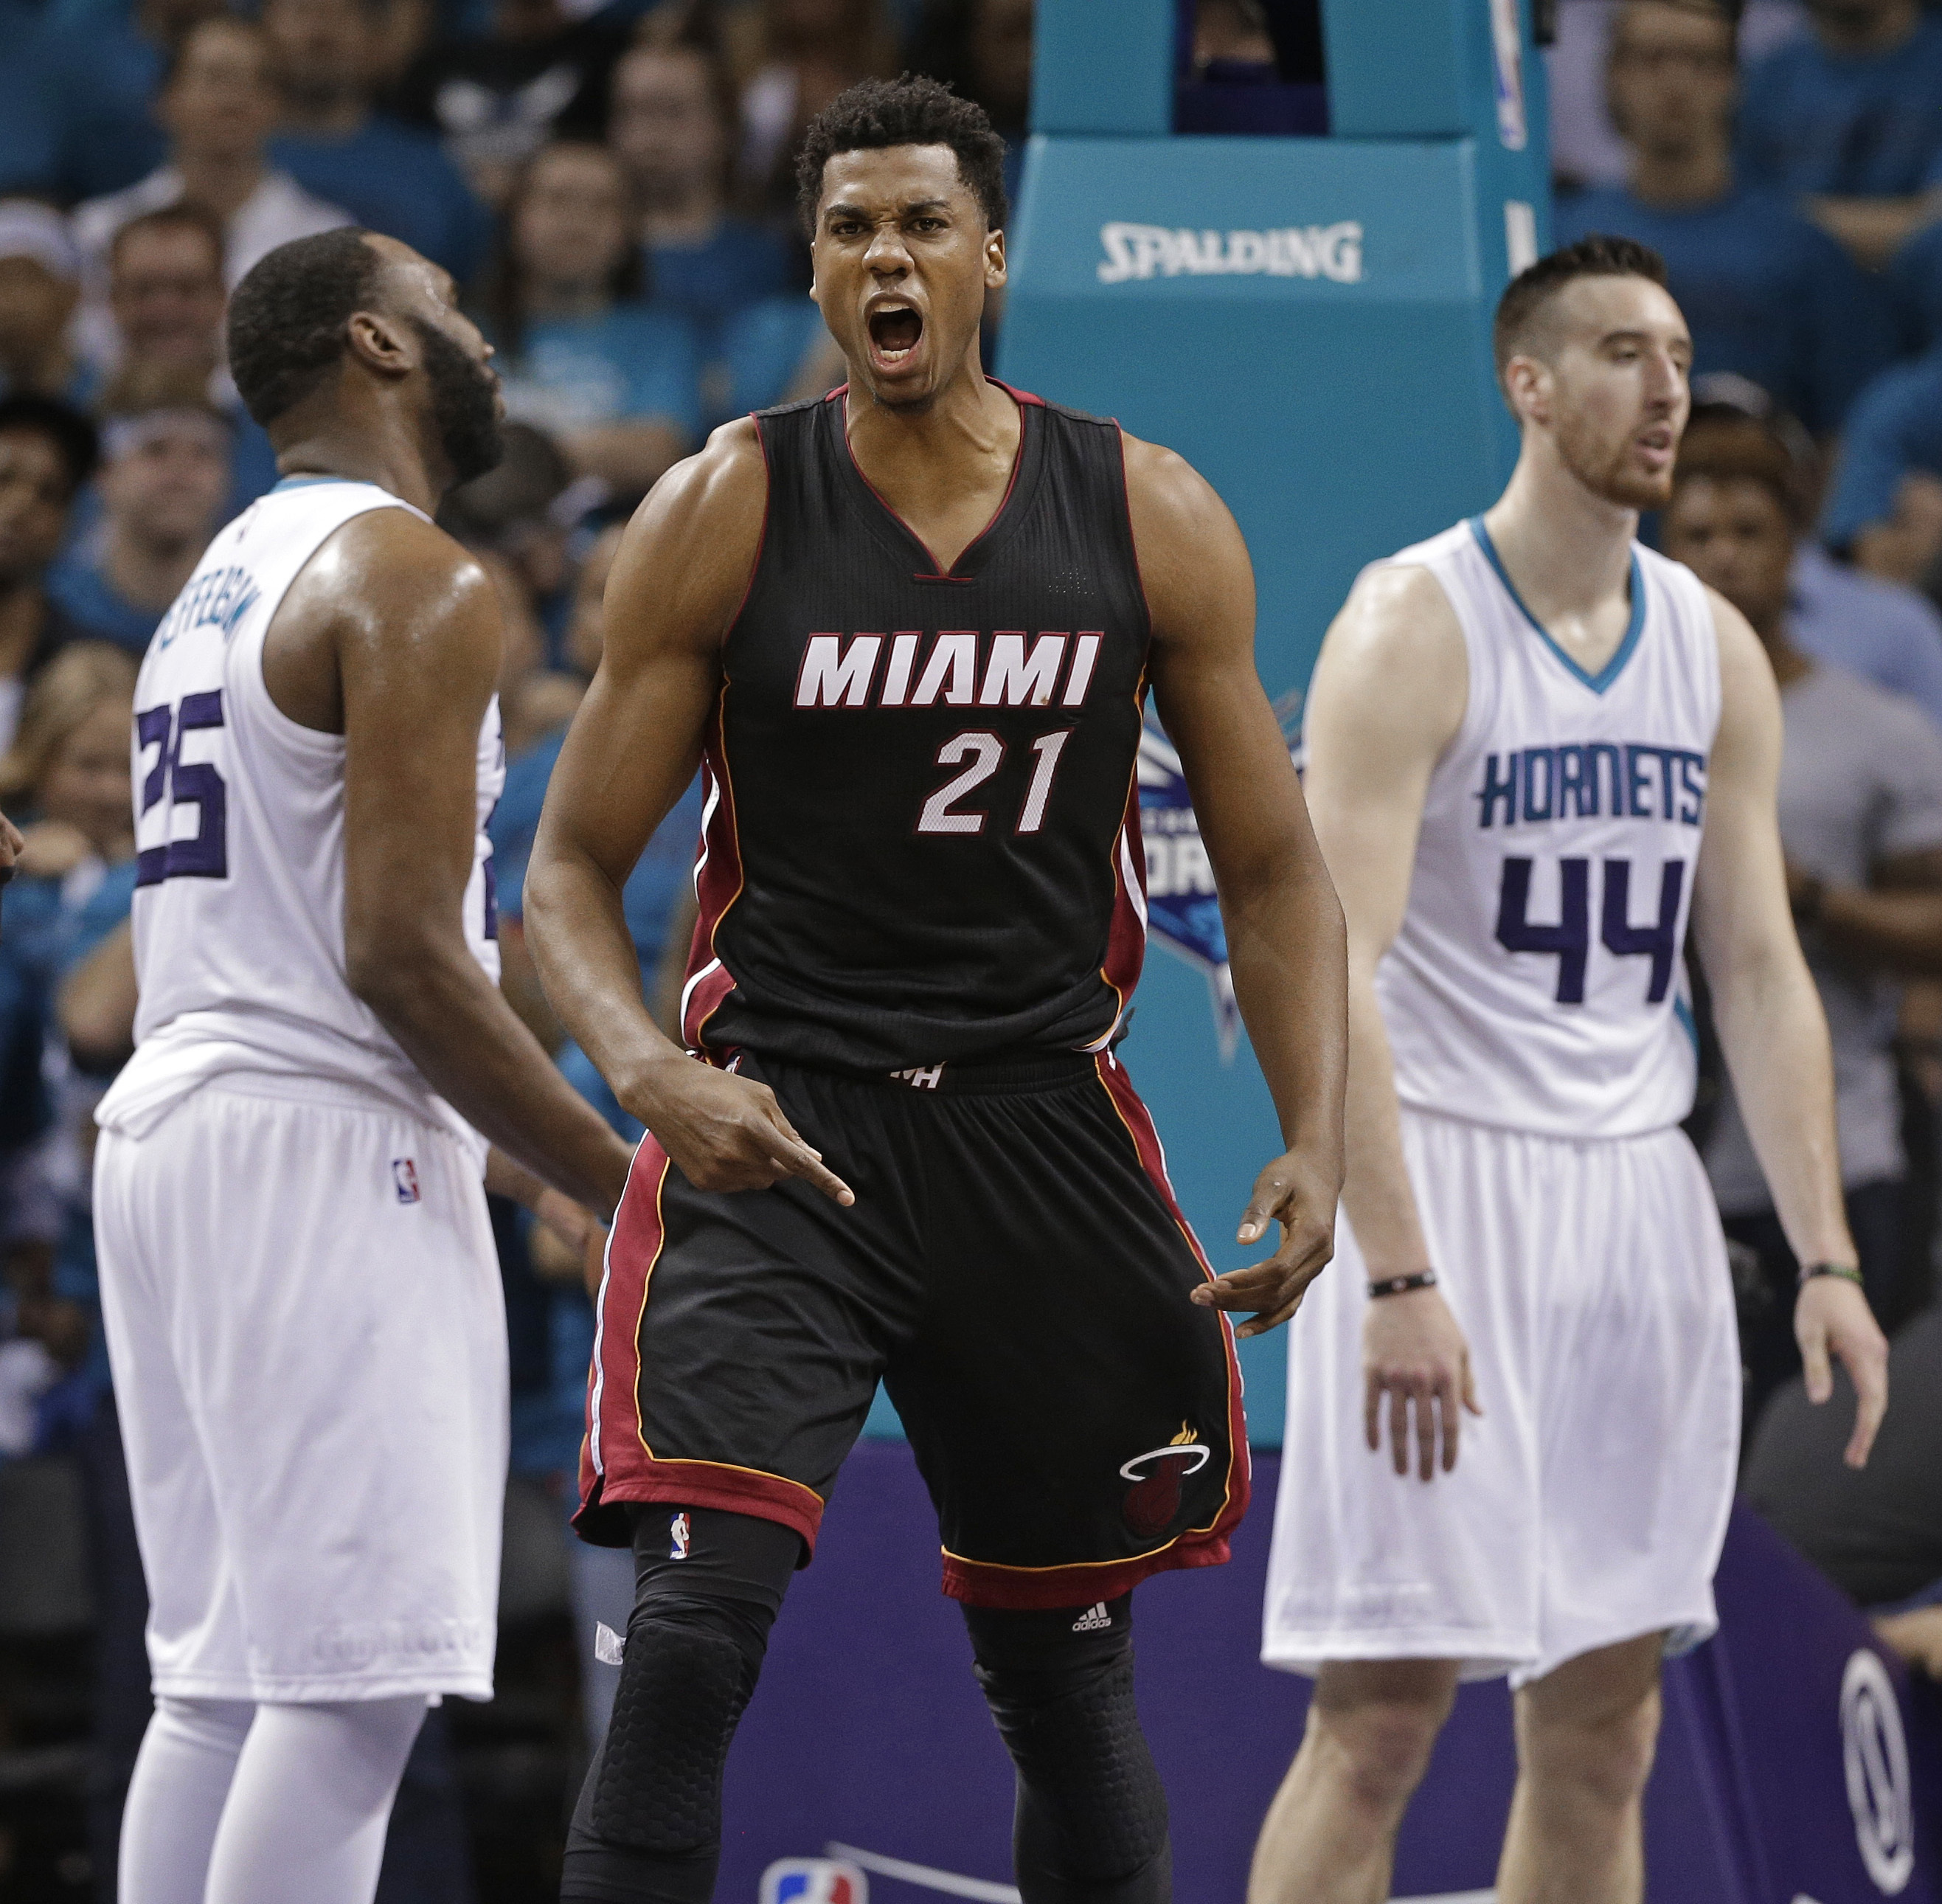 FILE - In this Friday, April 29, 2016, file photo, Miami Heat's Hassan Whiteside (21) reacts to making a basket and being fouled by Charlotte Hornets' Frank Kaminsky (44) during the second half in Game 6 of an NBA basketball playoffs first-round series in